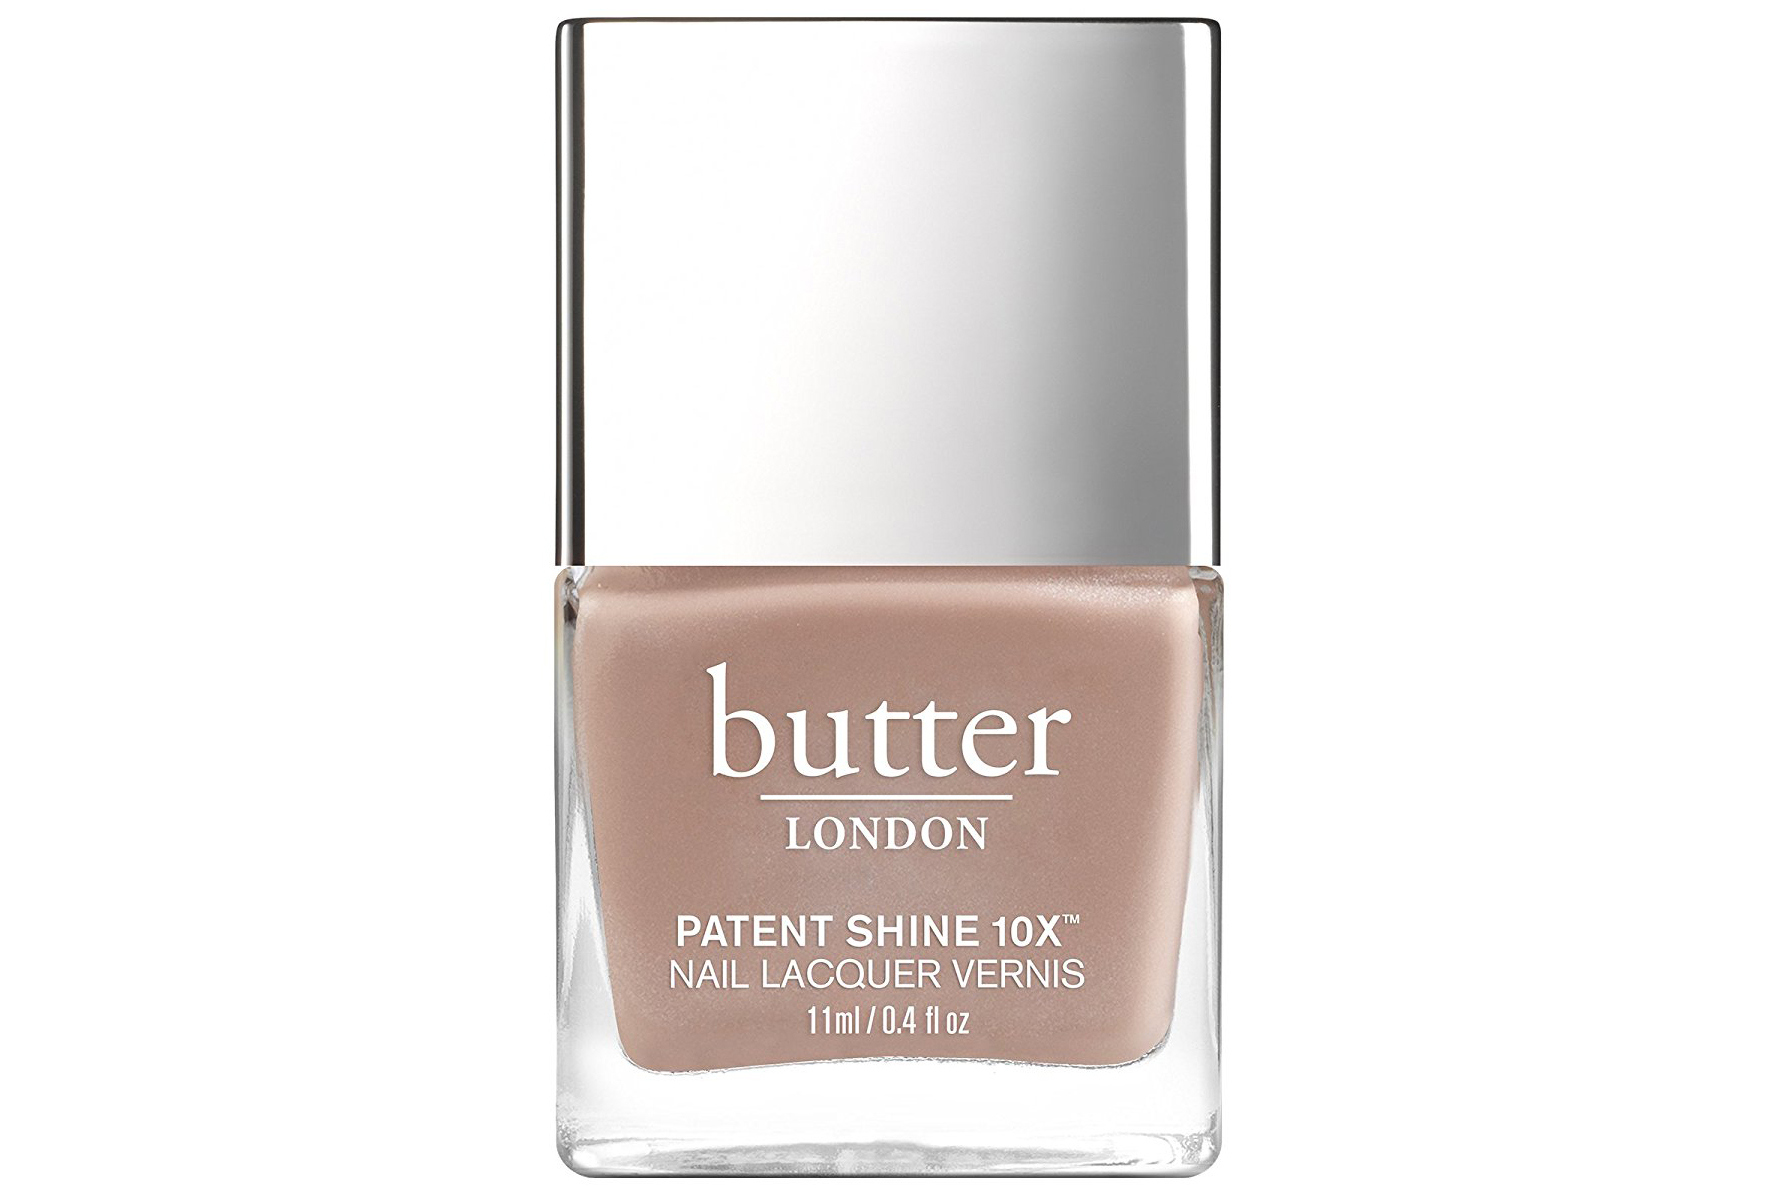 The Best Nude Nail Polish for Every Skin Tone